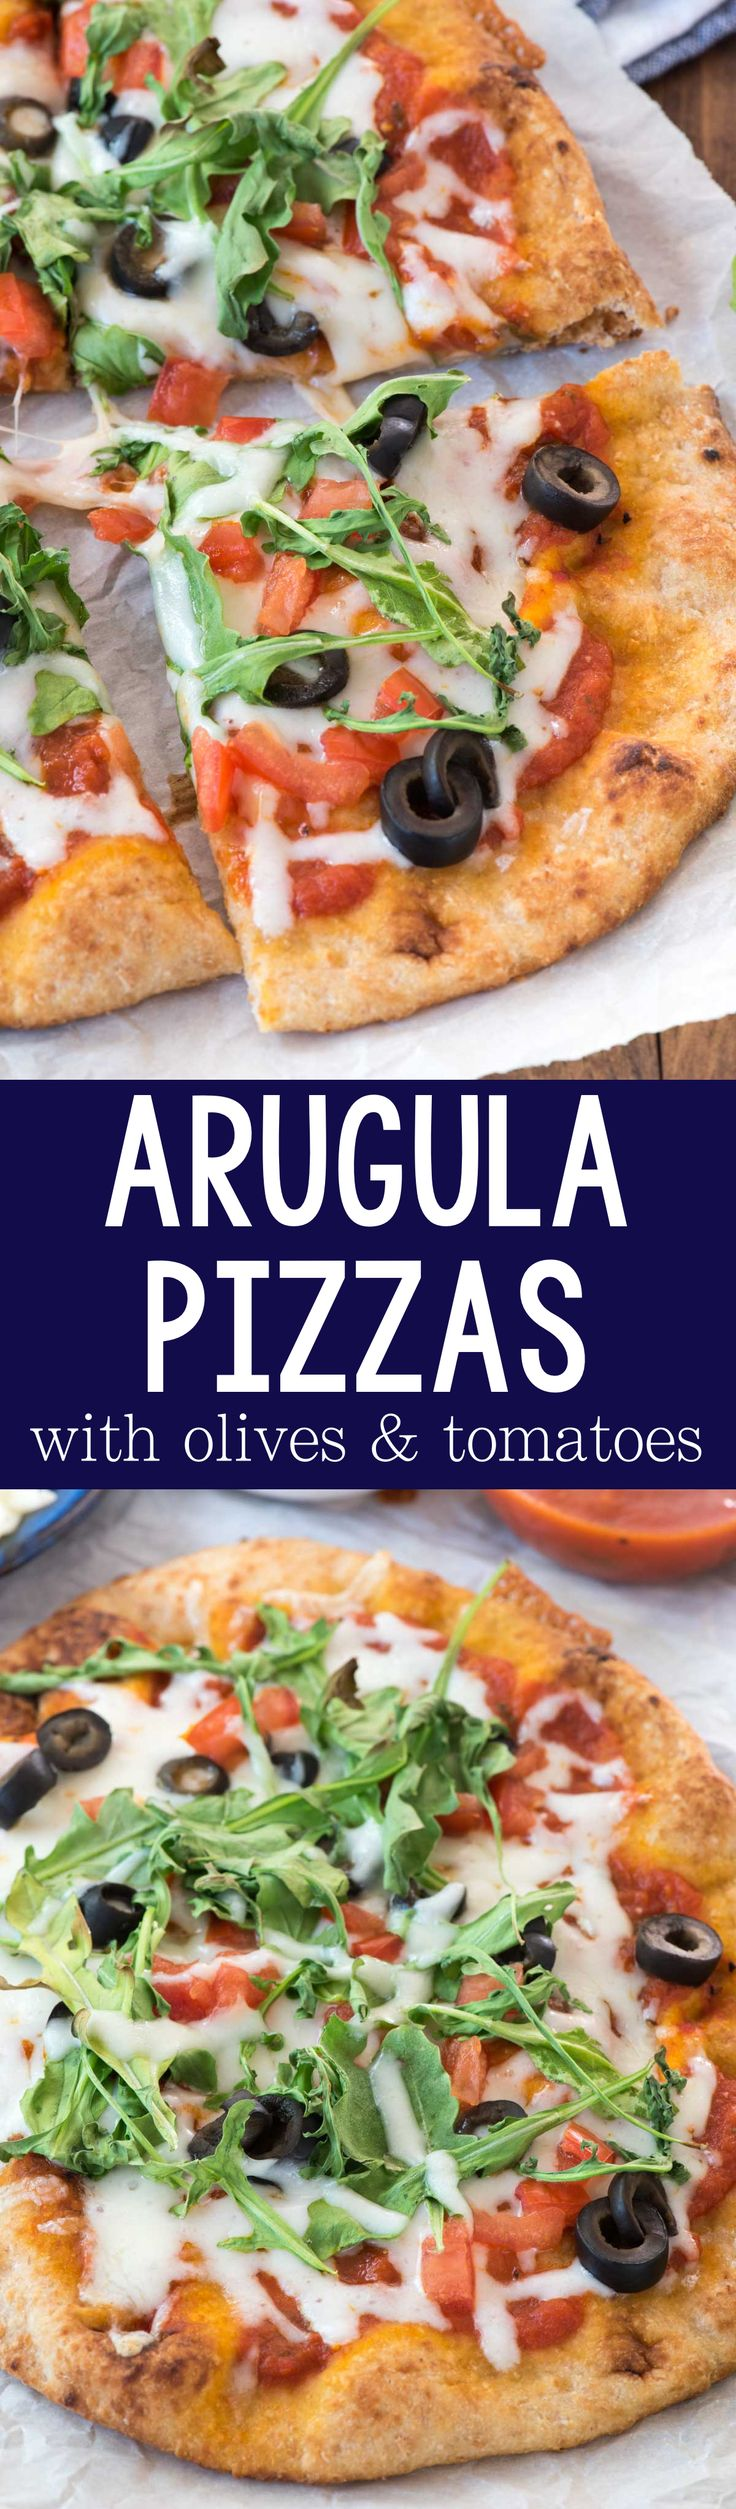 Arugula Pizzas - such an easy dinner recipe! Use mini pizza dough or naan for an easy weeknight meal everyone loves - with a little bit of greens!!